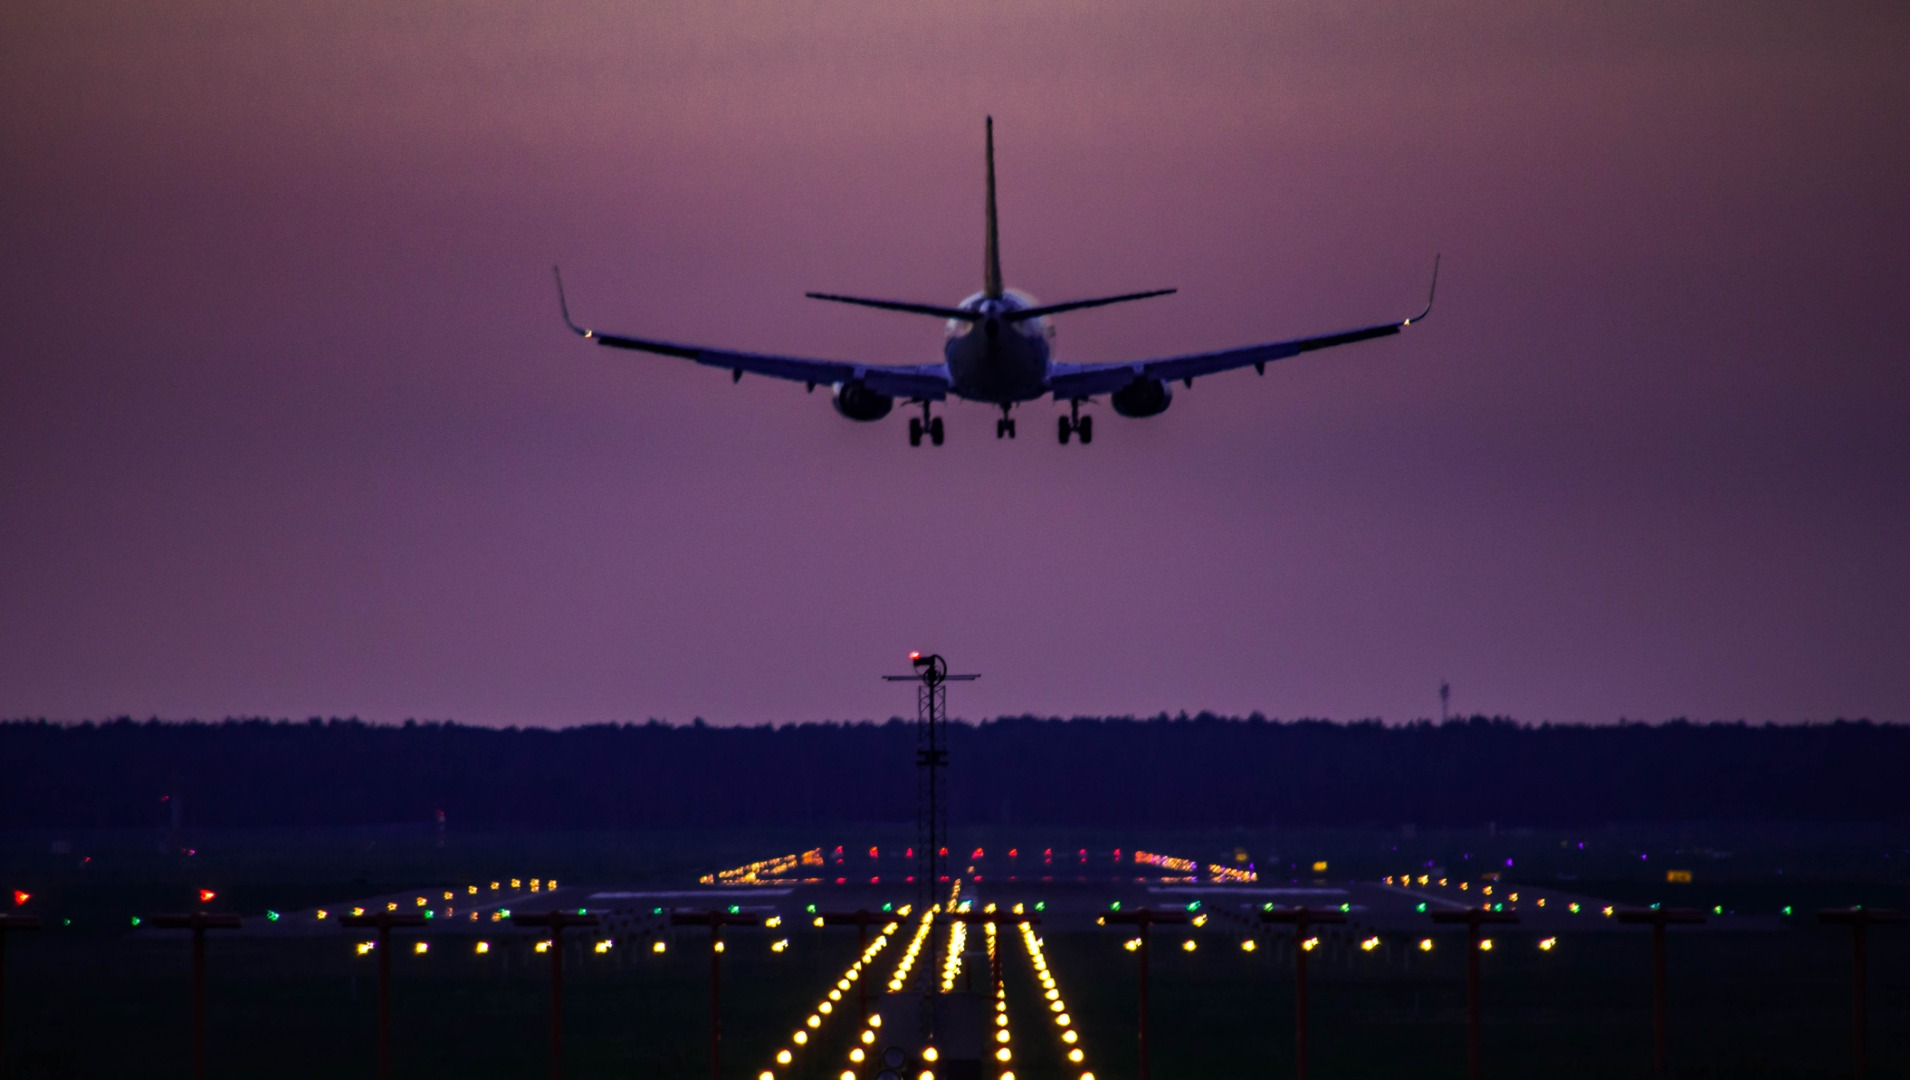 What is airworthiness and why is it important?